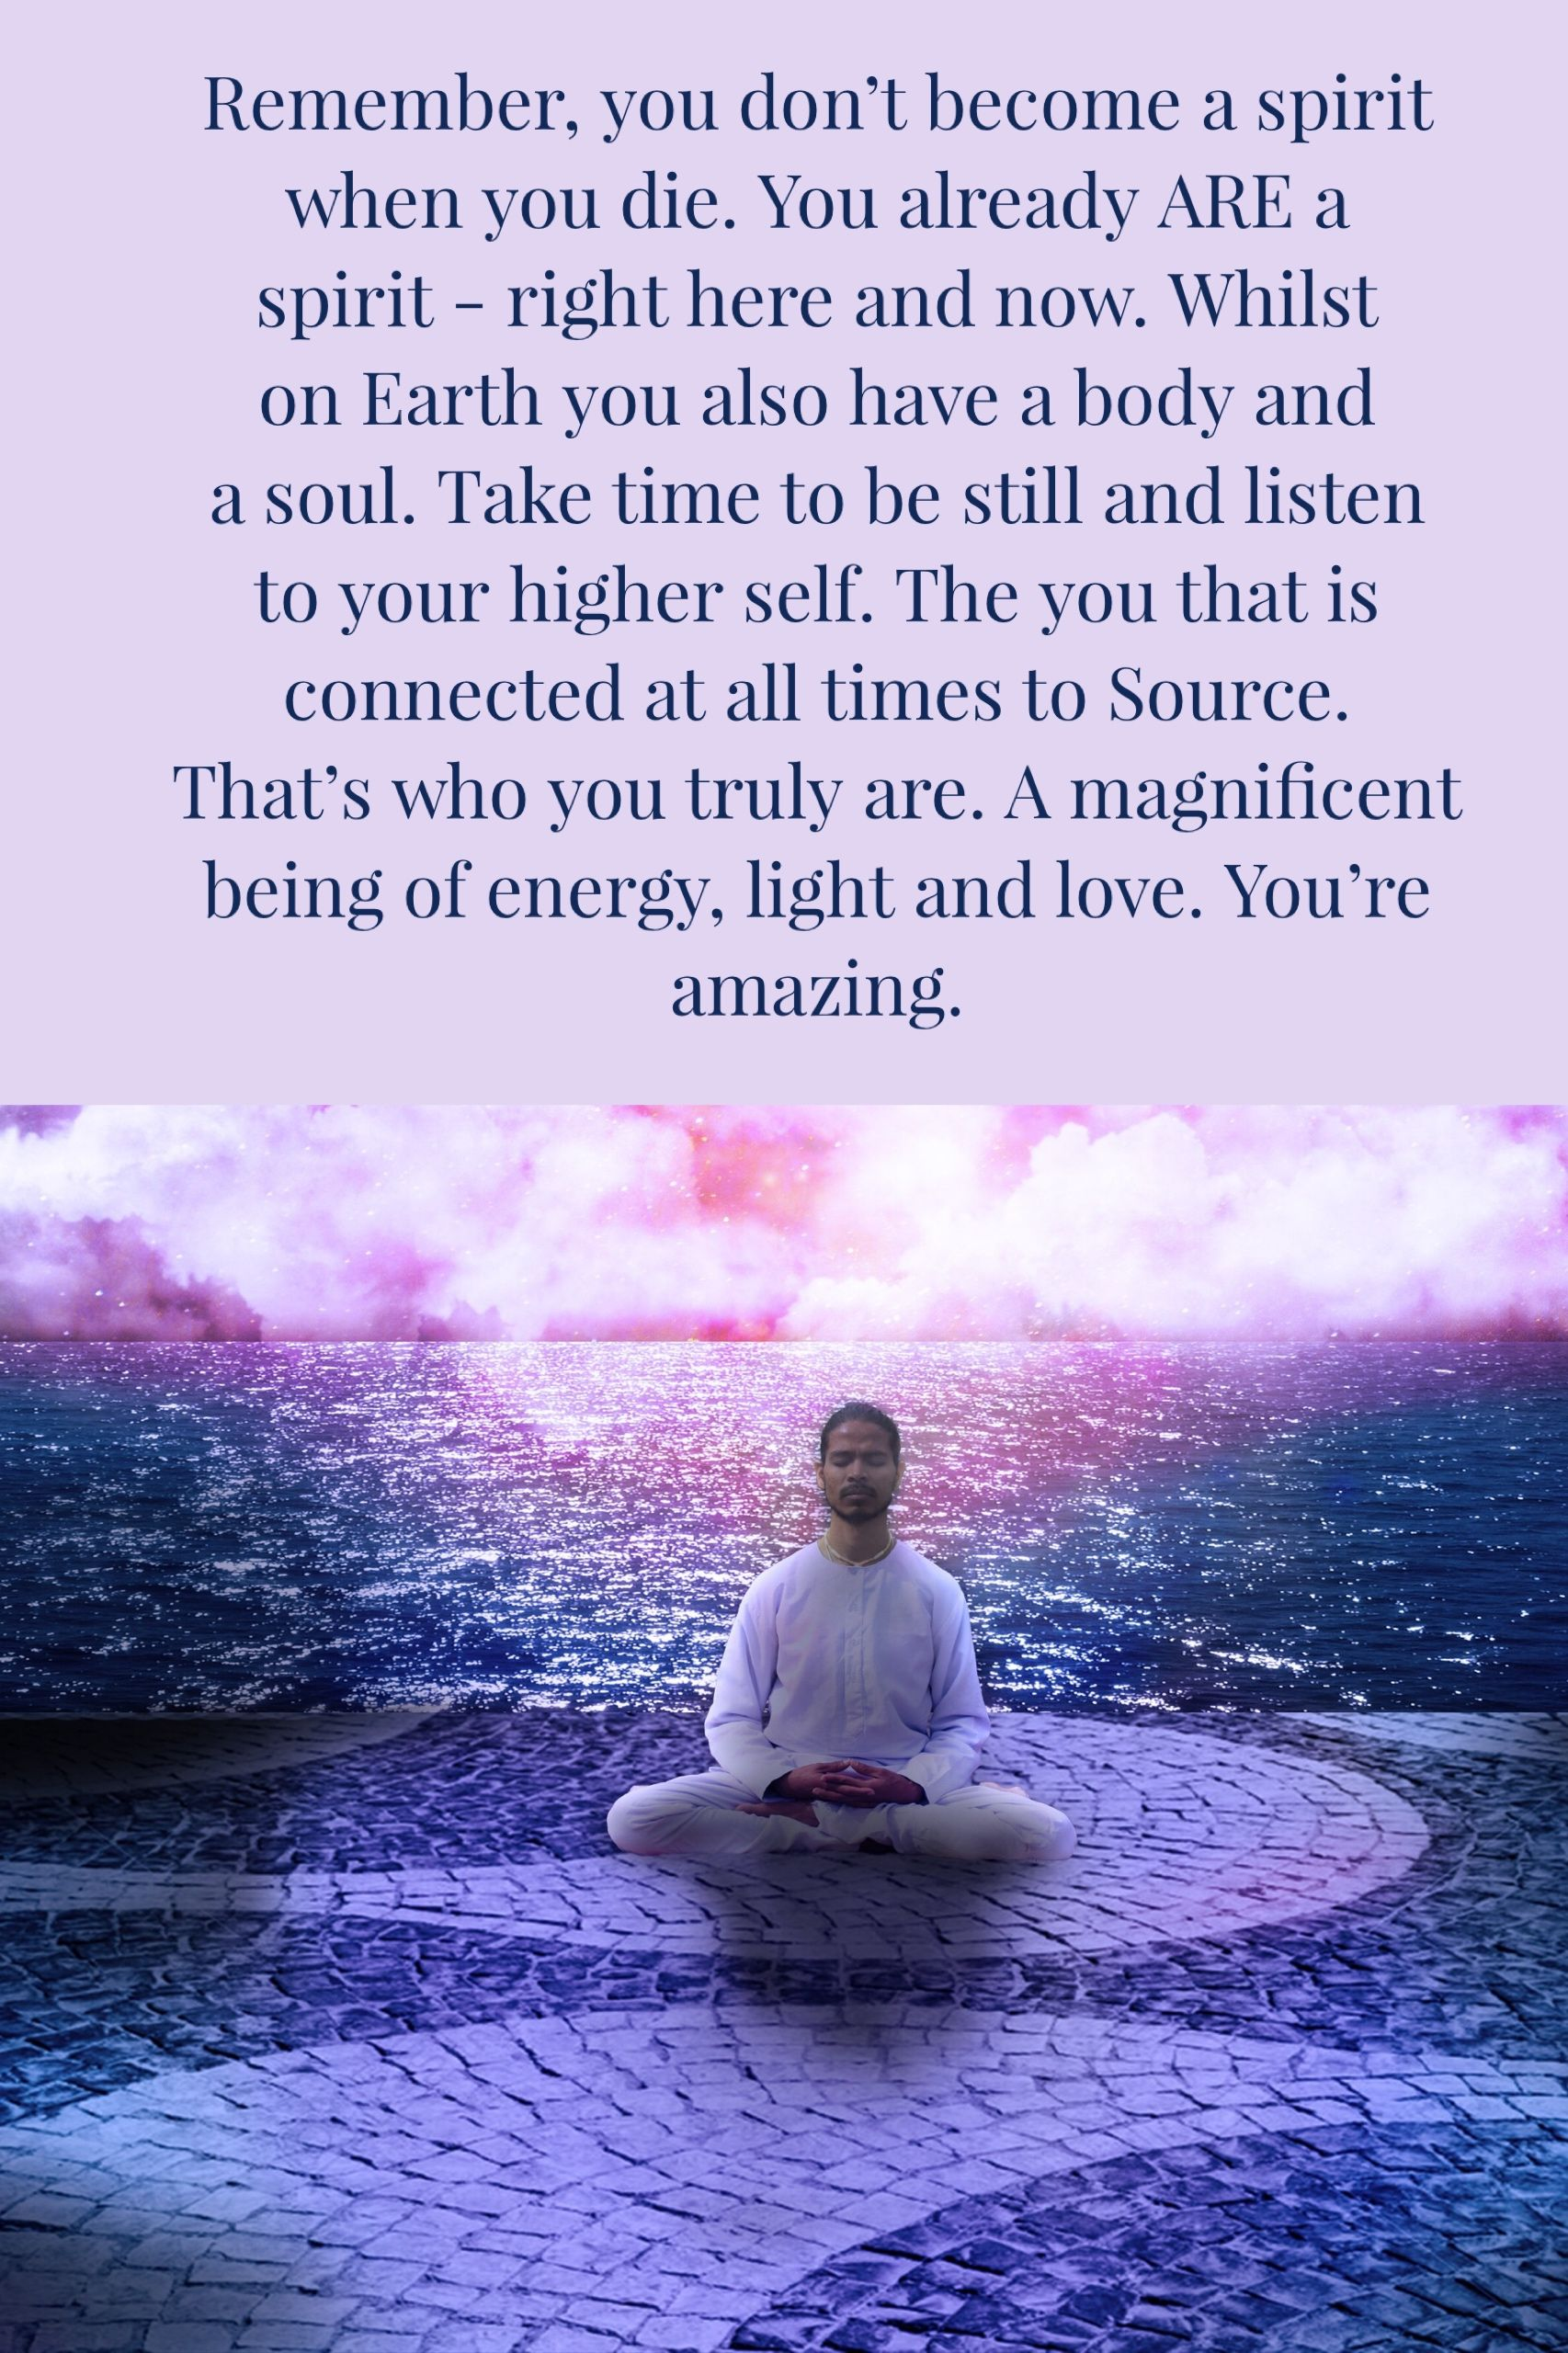 Believe: Get in touch with your higher self | Spiritual ...